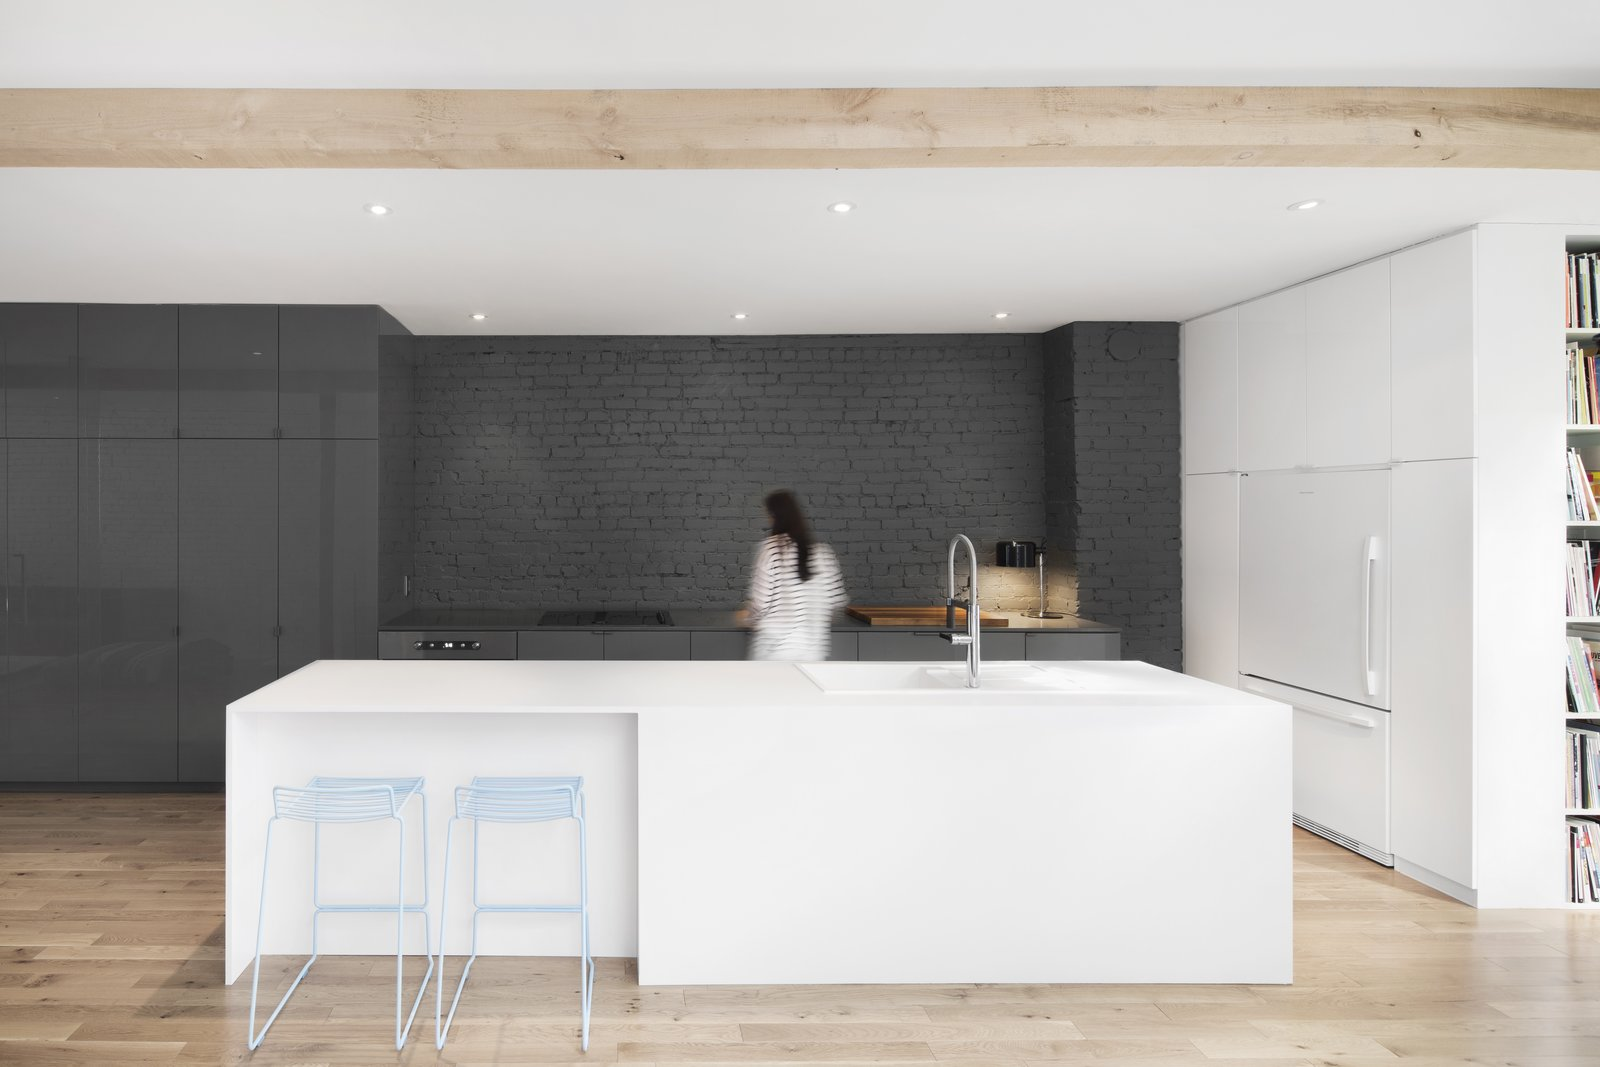 Kitchen, Brick Backsplashe, Refrigerator, Cooktops, Recessed Lighting, Medium Hardwood Floor, White Cabinet, Drop In Sink, and Table Lighting Gray, full-height, seamless cabinetry matches the gray-painted original brick wall. The contrast with the white kitchen island is striking.  Photo 6 of 12 in A 1910 Apartment Transforms Into an Open, Radiant Loft